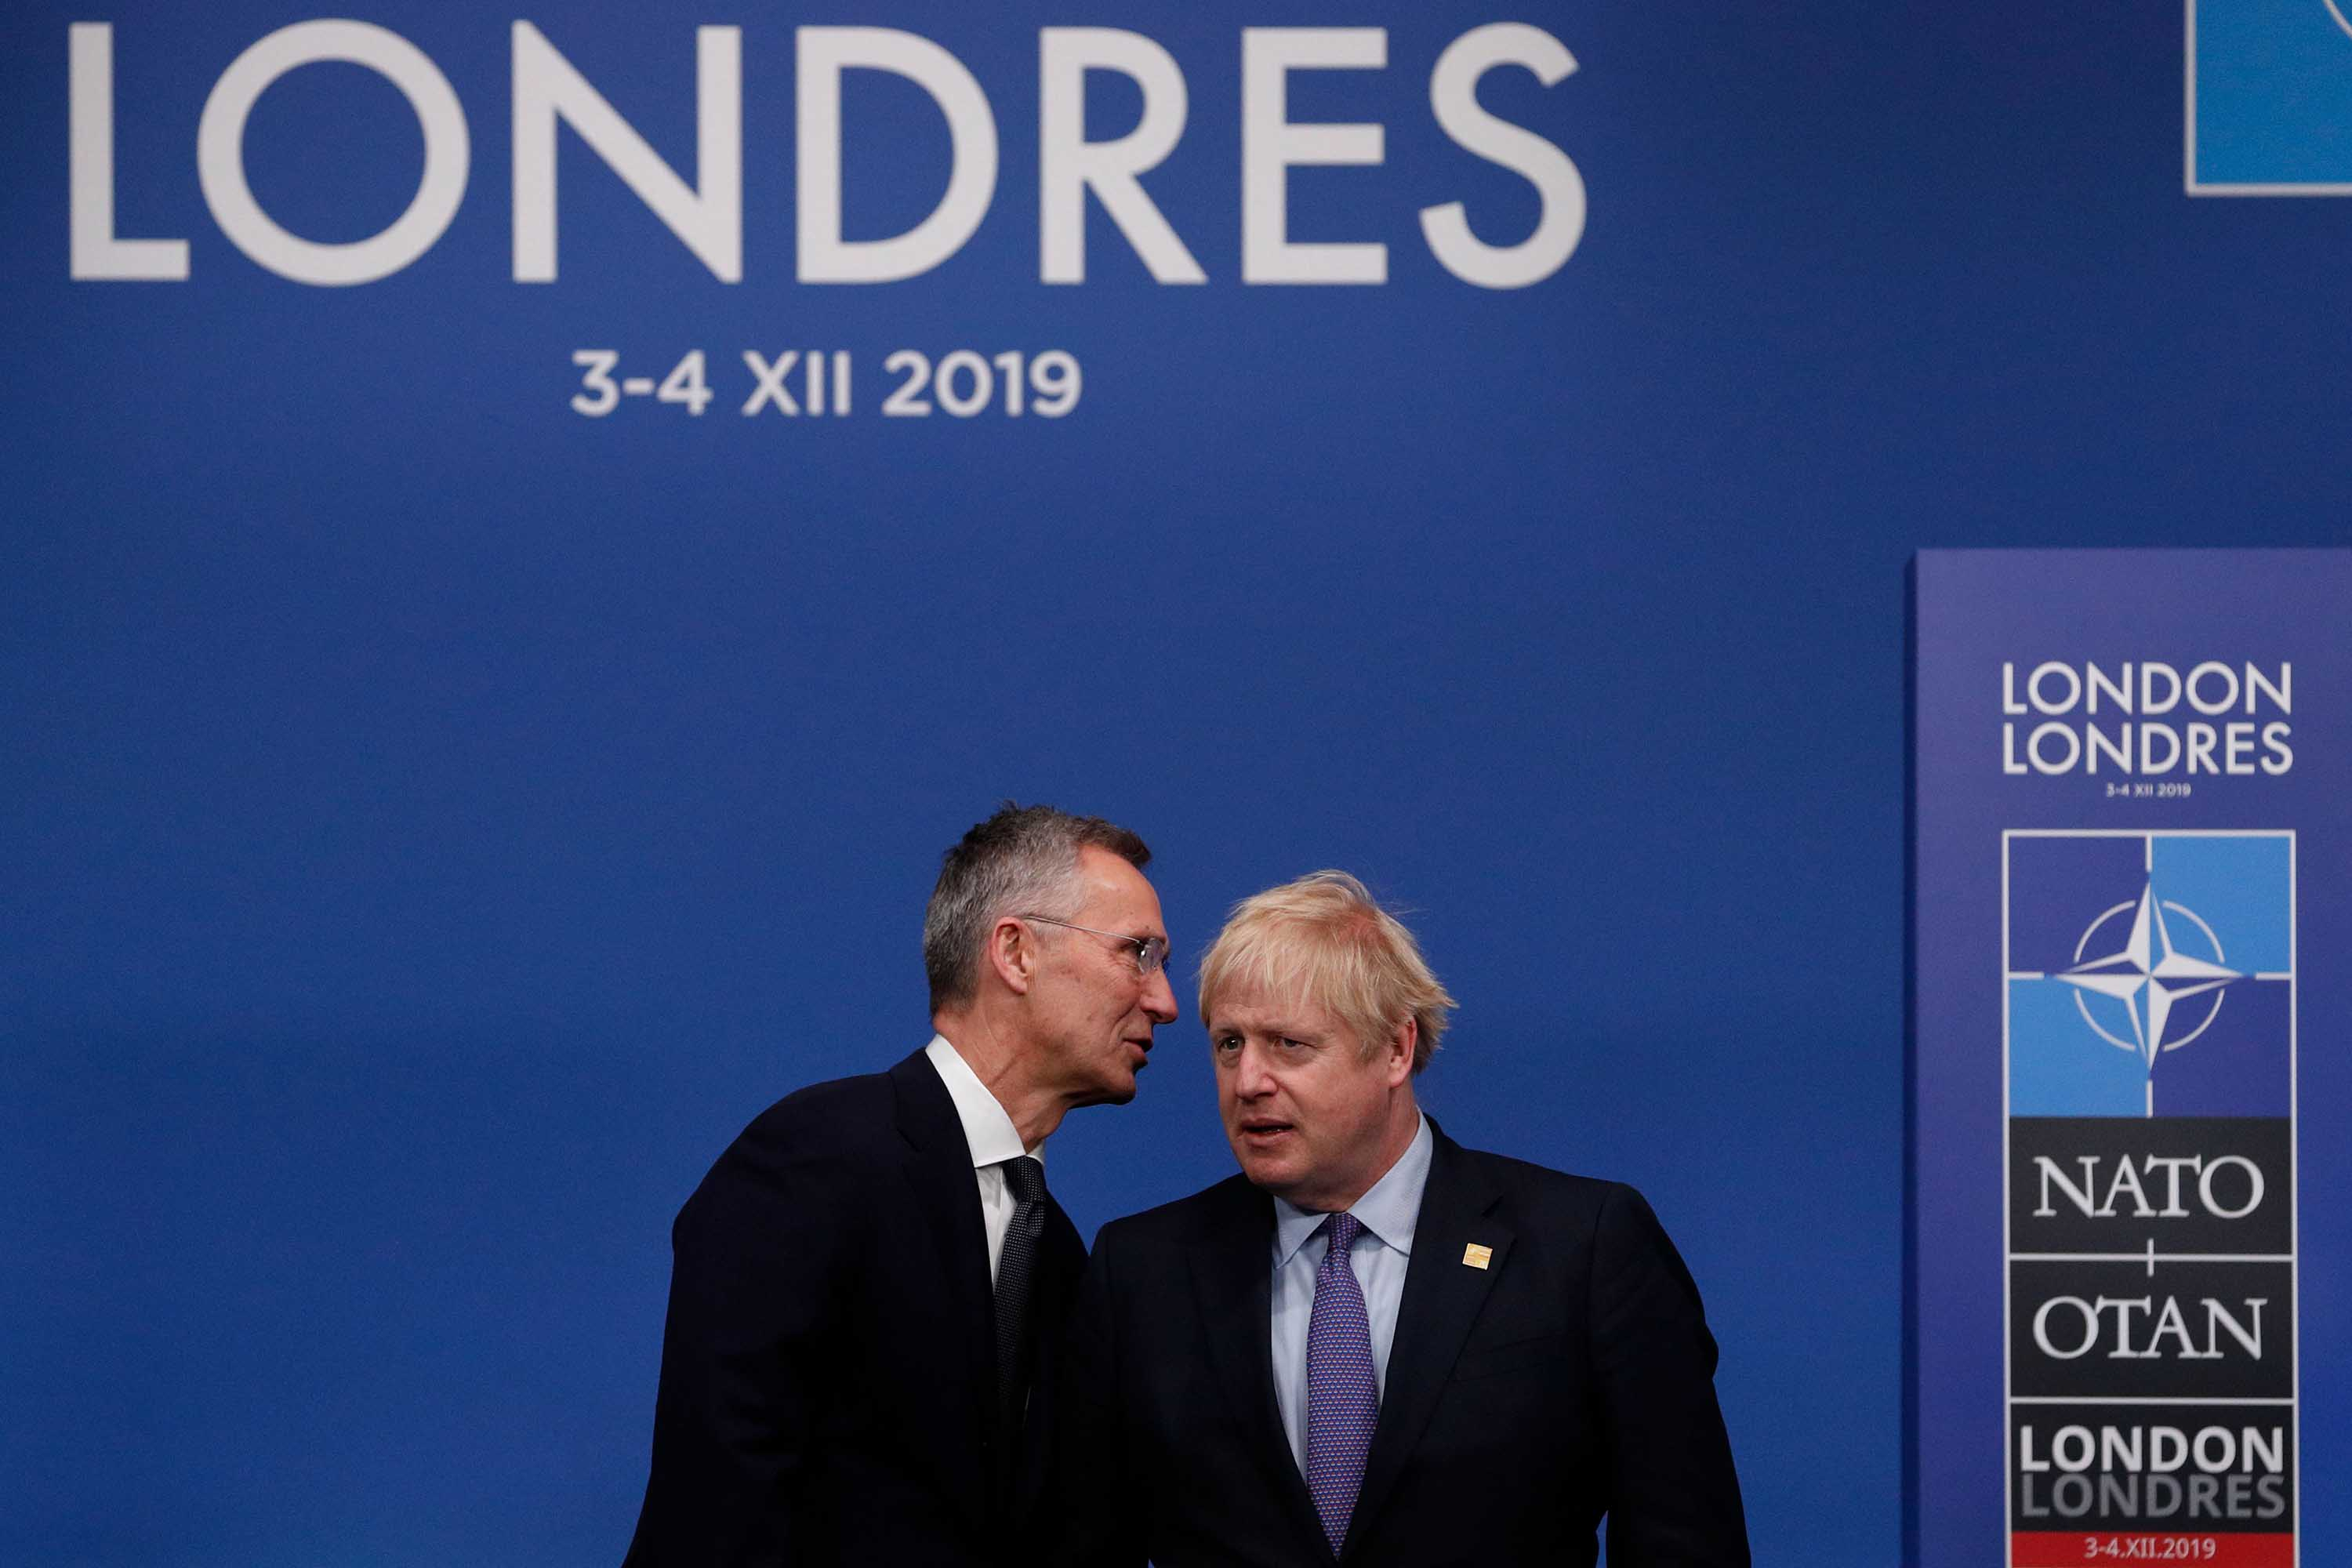 NATO Secretary General Jens Stoltenberg speaks with Prime Minister Boris Johnson at the NATO leaders meeting on Wednesday. Photo: Adrian Dennis/AFP via Getty Images